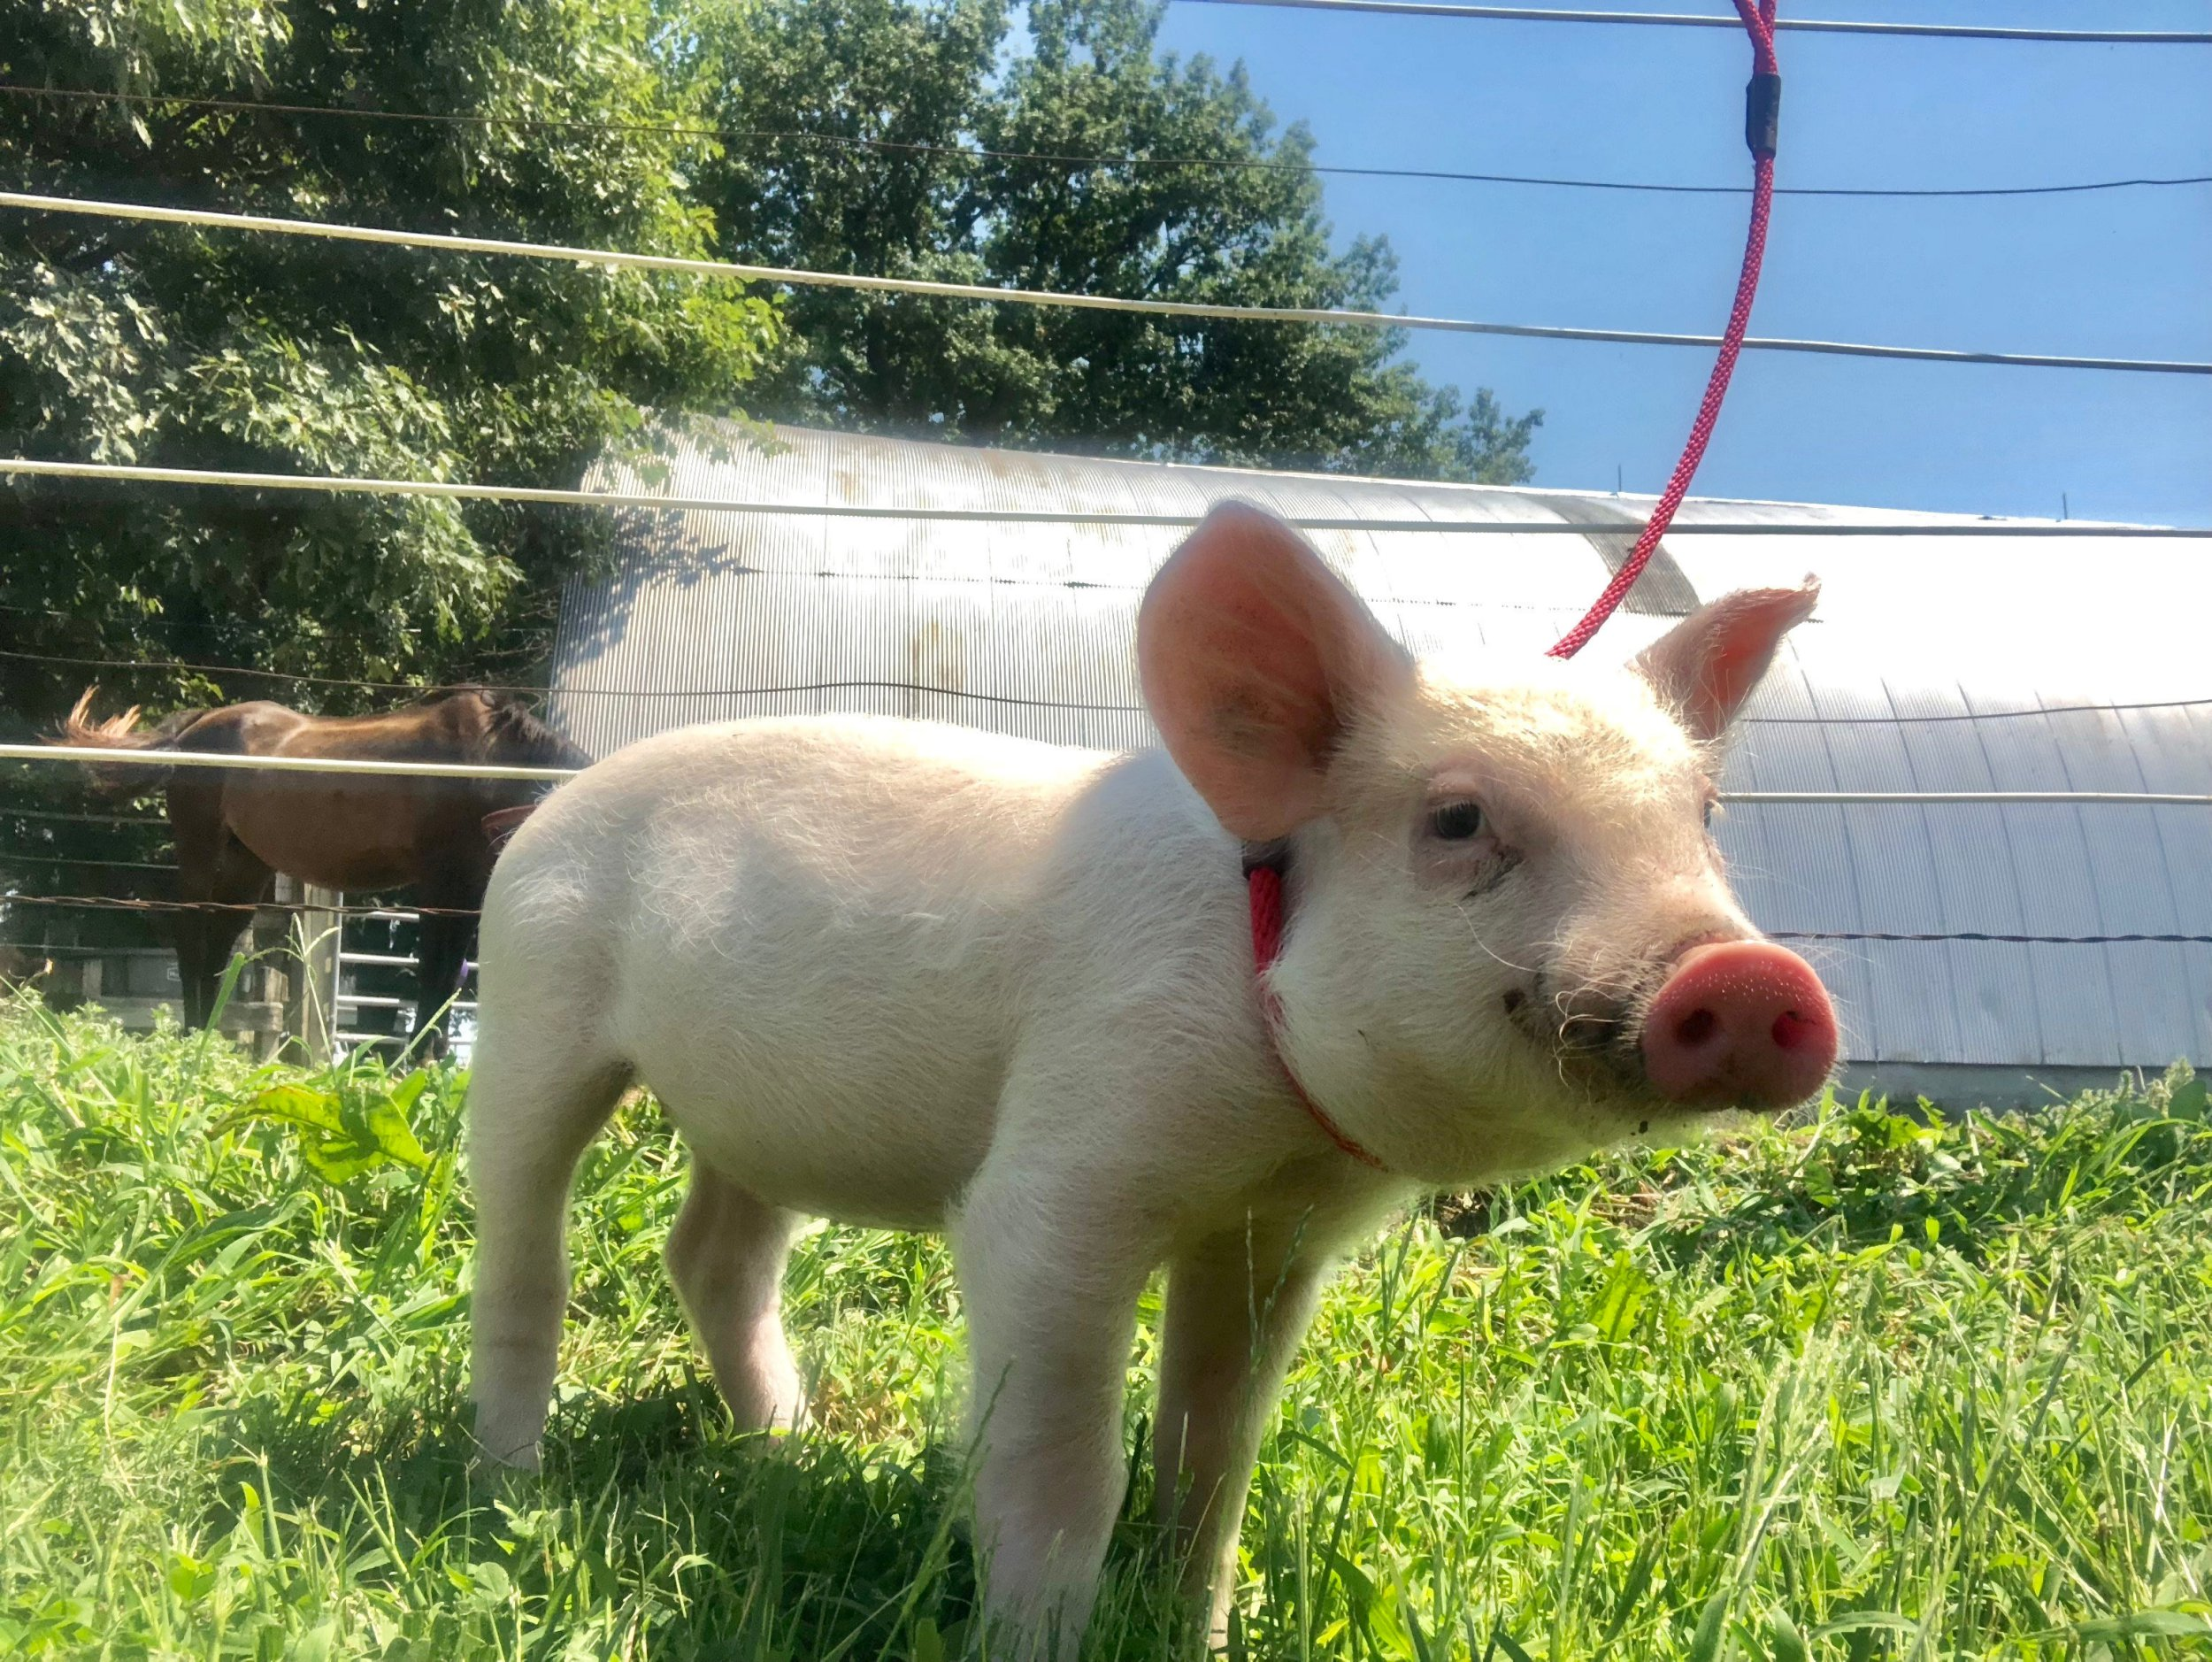 Piglet rescued when she escaped truck on the way to the slaughterhouse